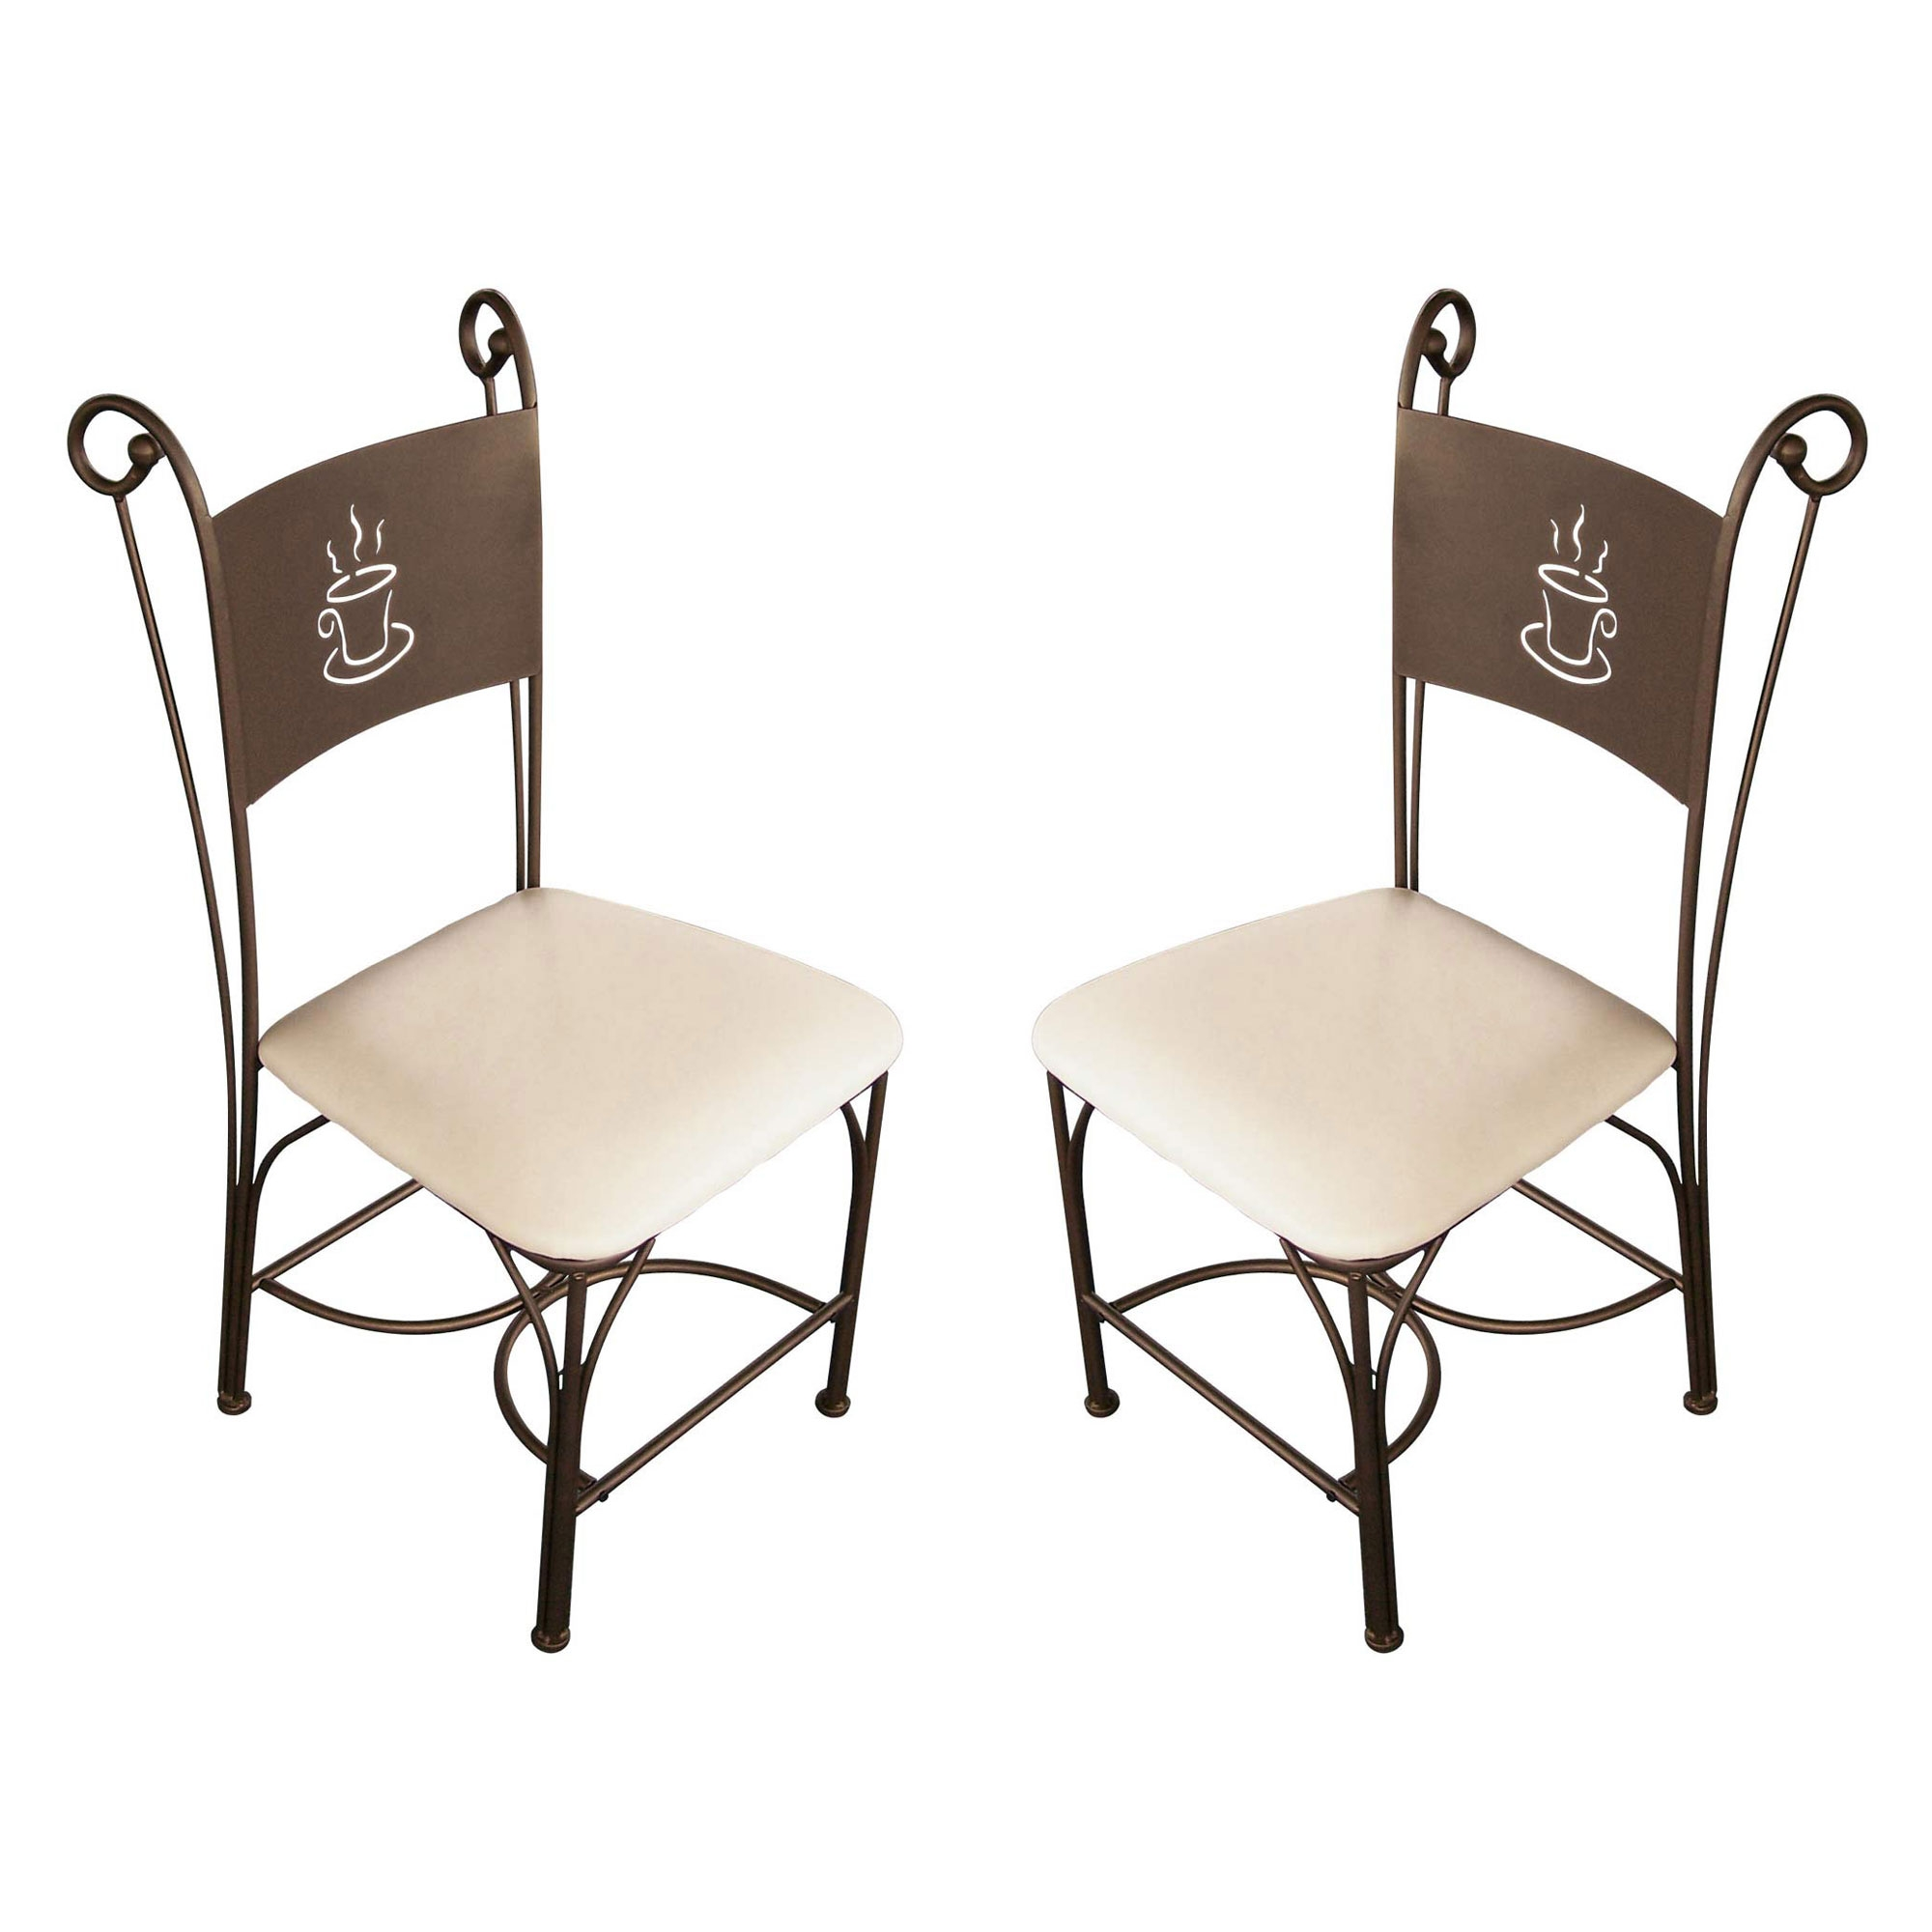 Chaise de cuisine en fer forg bronze coffee for Chaise de cuisine de couleur